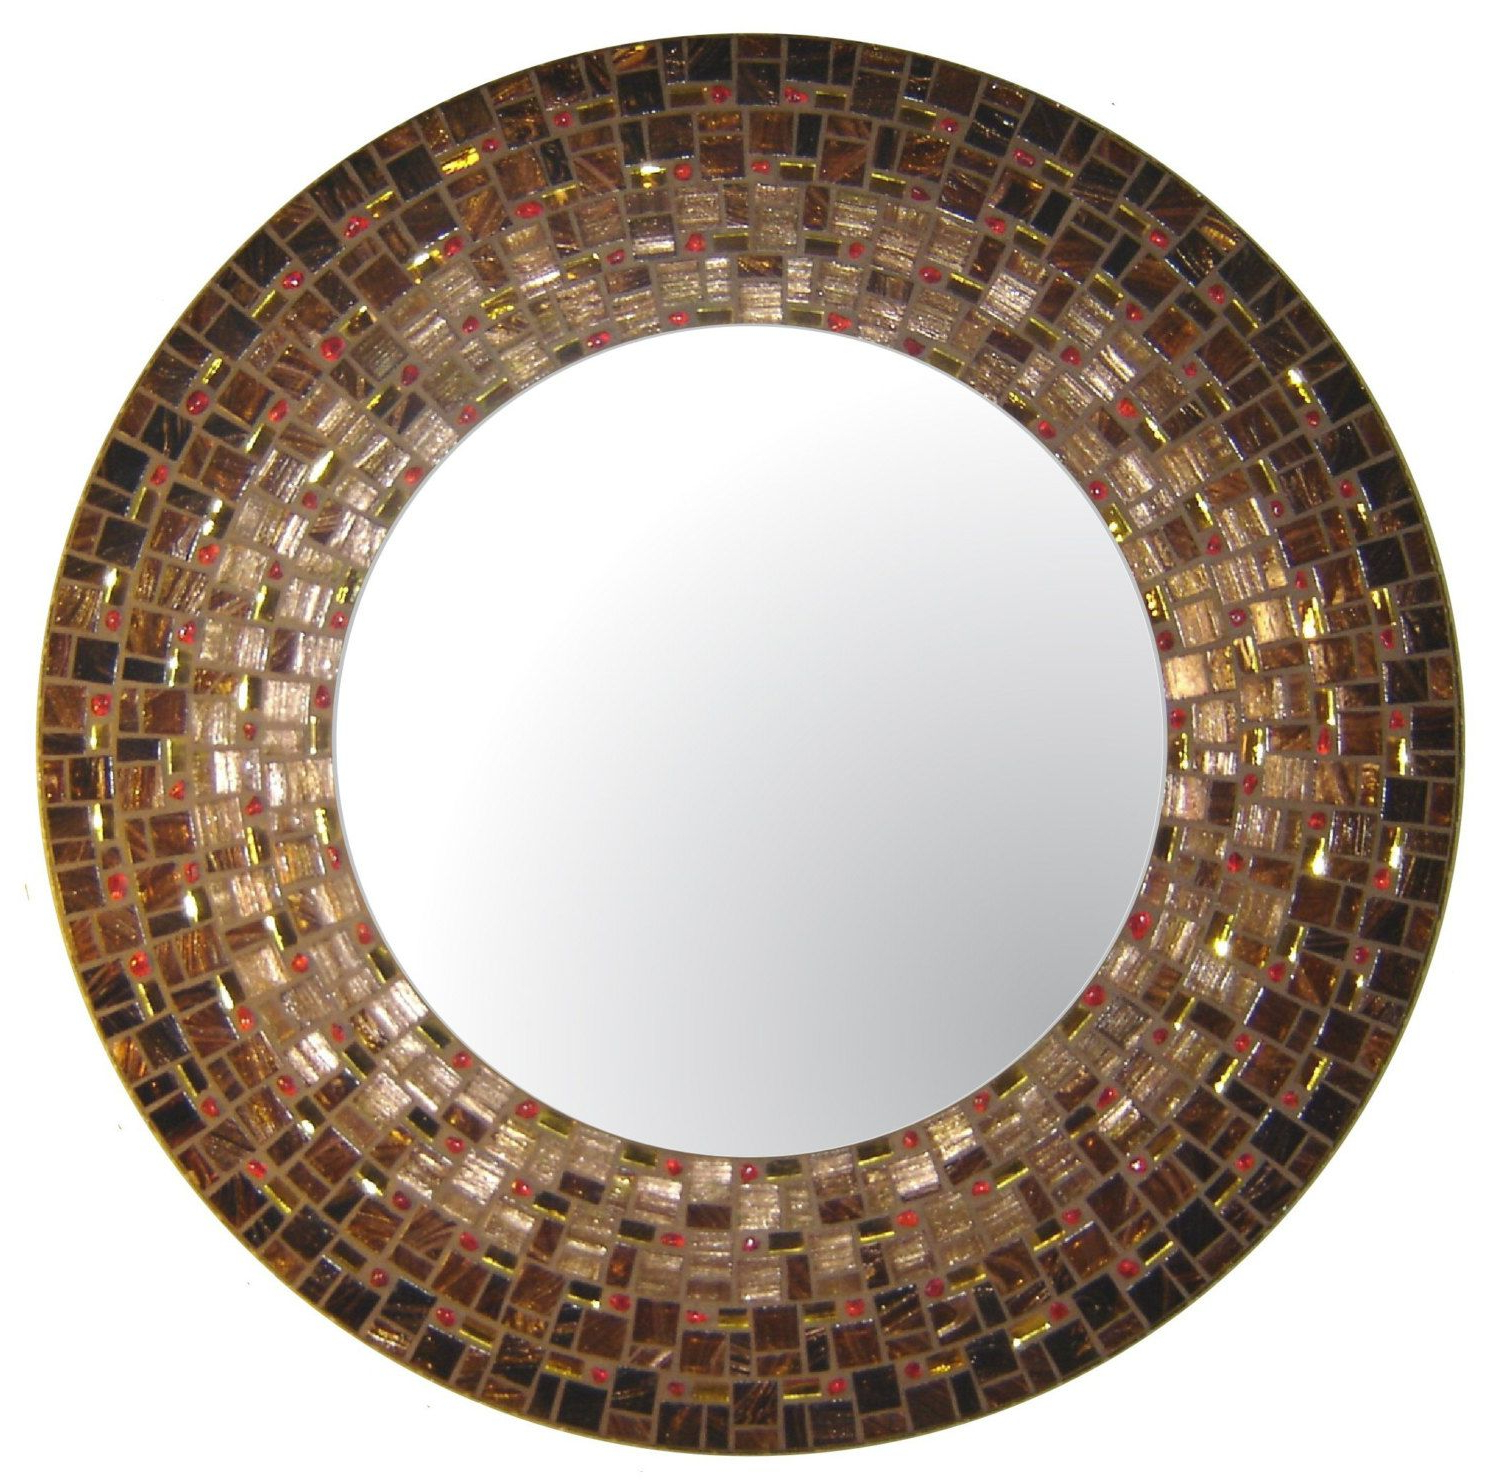 Large Red Wall Mirrors Regarding 2019 Moroccan Mosaic Mirror Brown Copper Gold & Redopusmosaics (View 5 of 20)